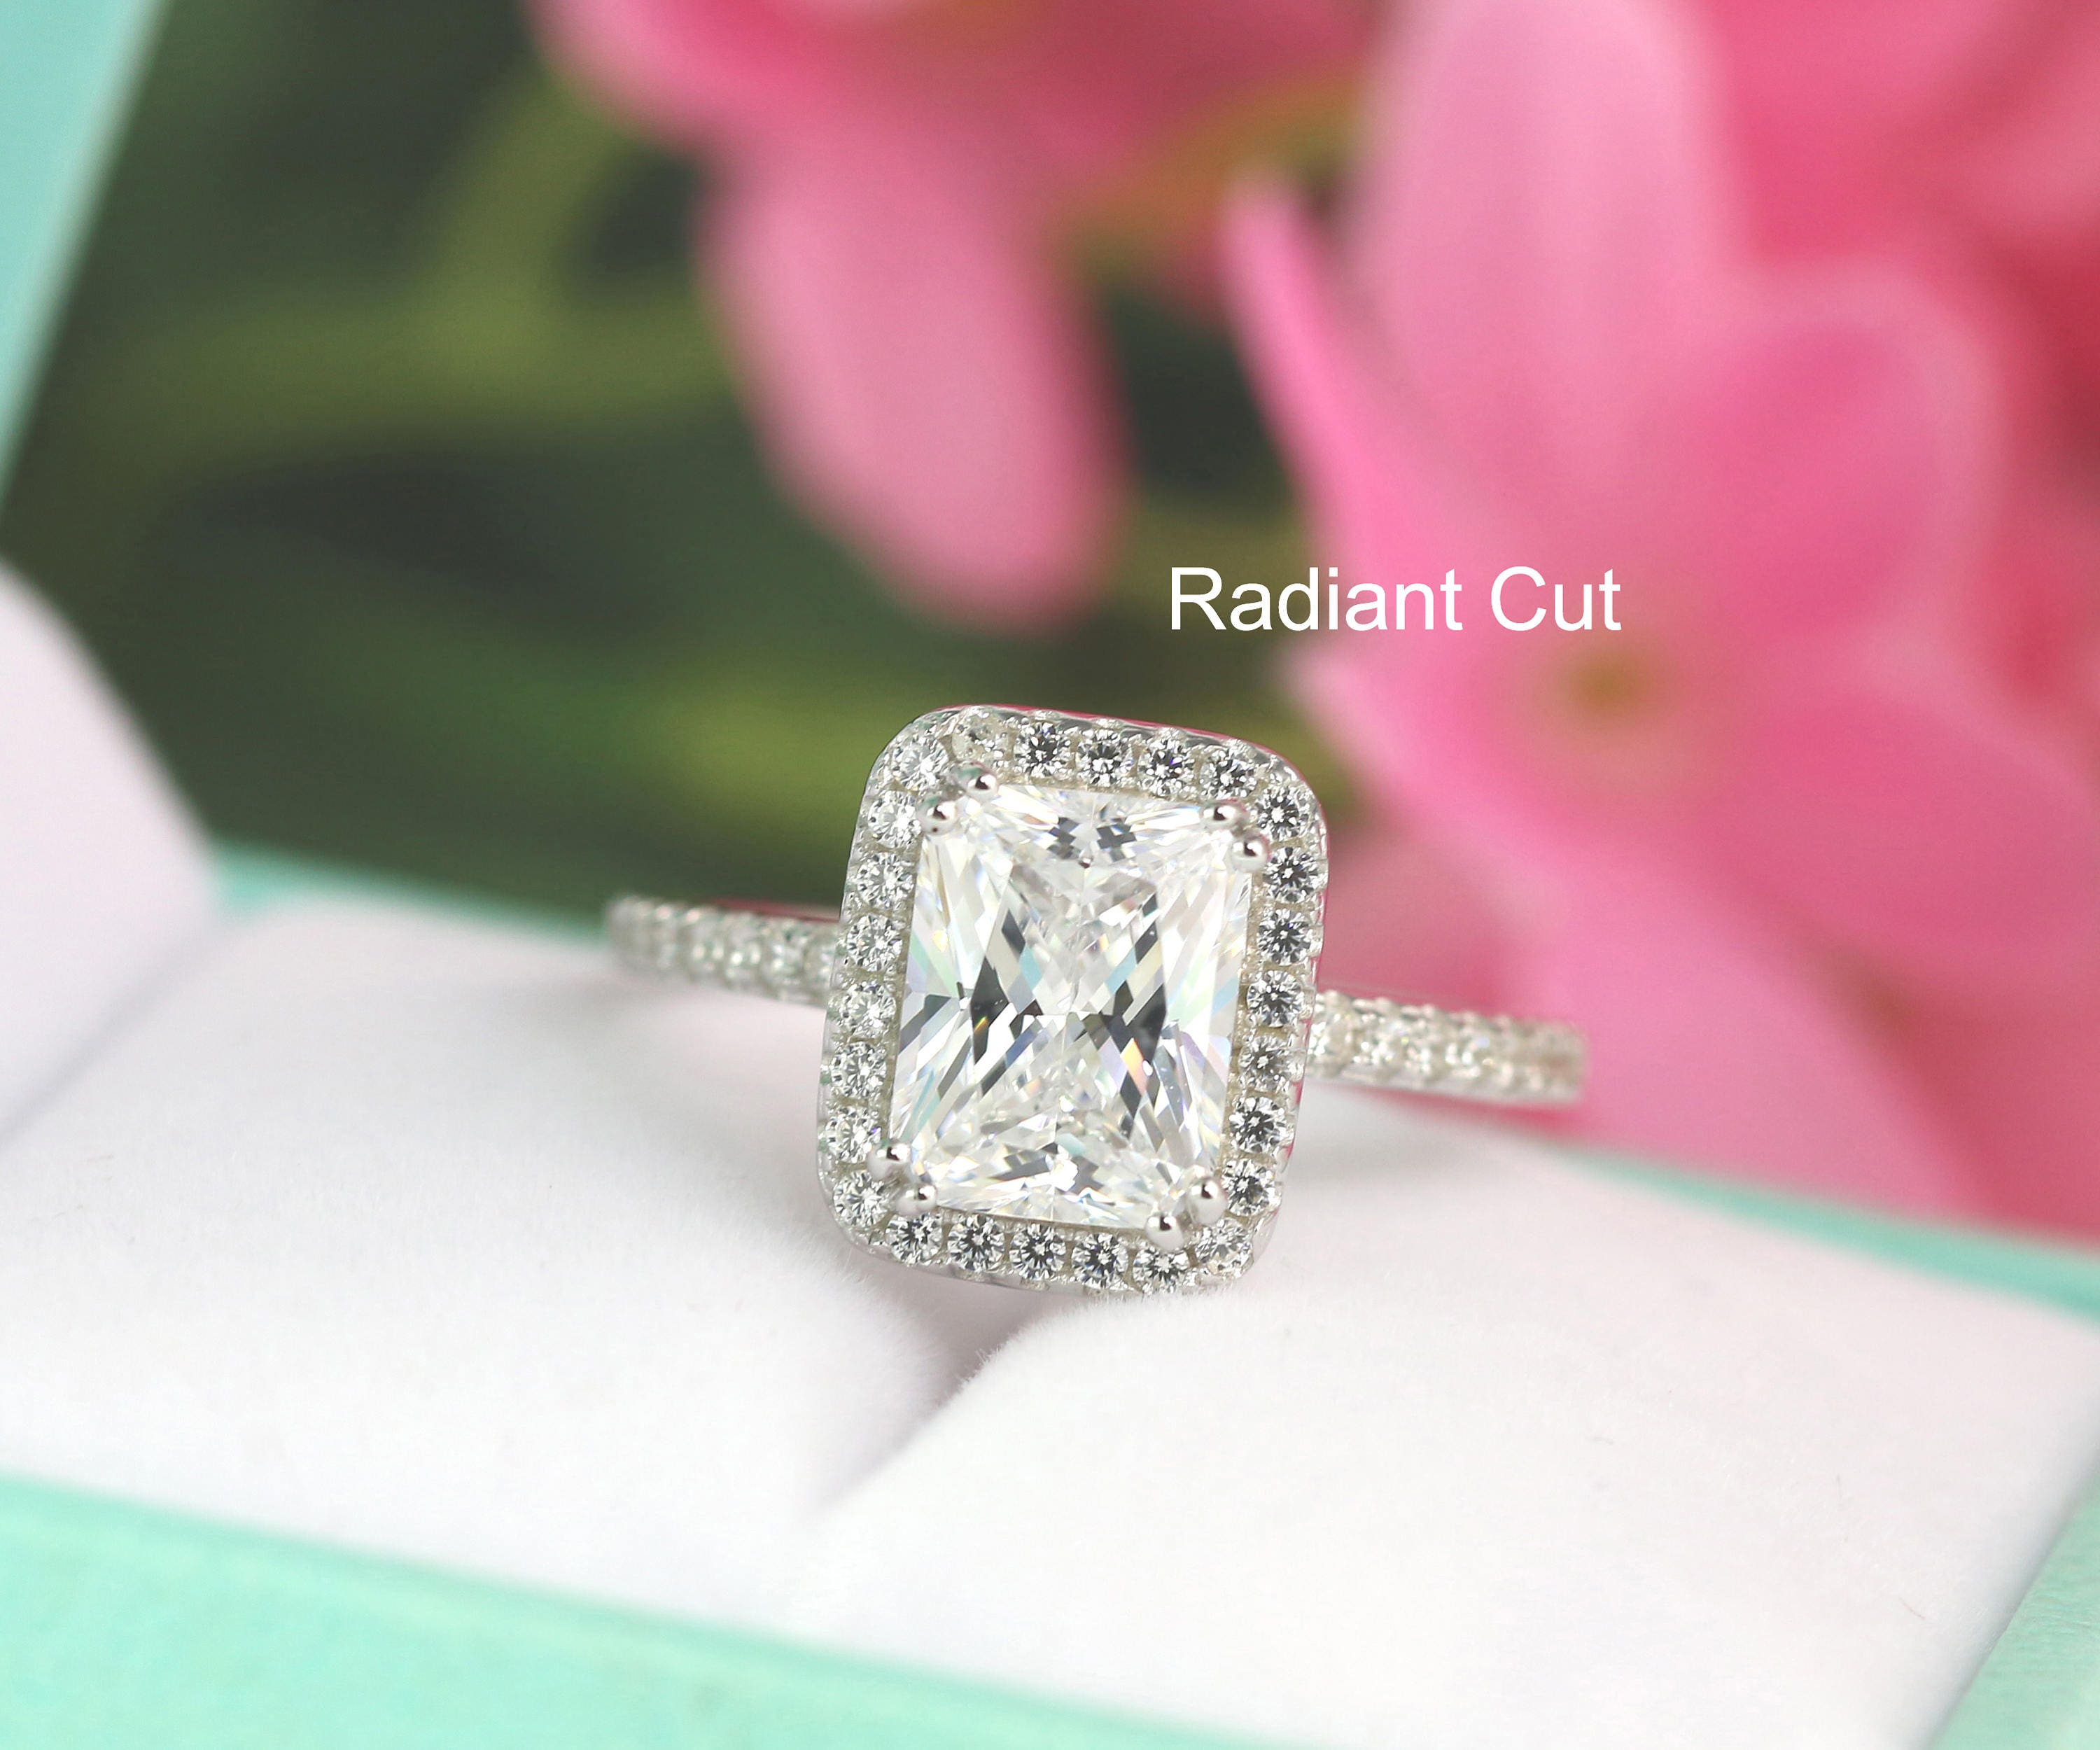 blog diamonds radiant cut ritani engagement ring asscher vs emerald